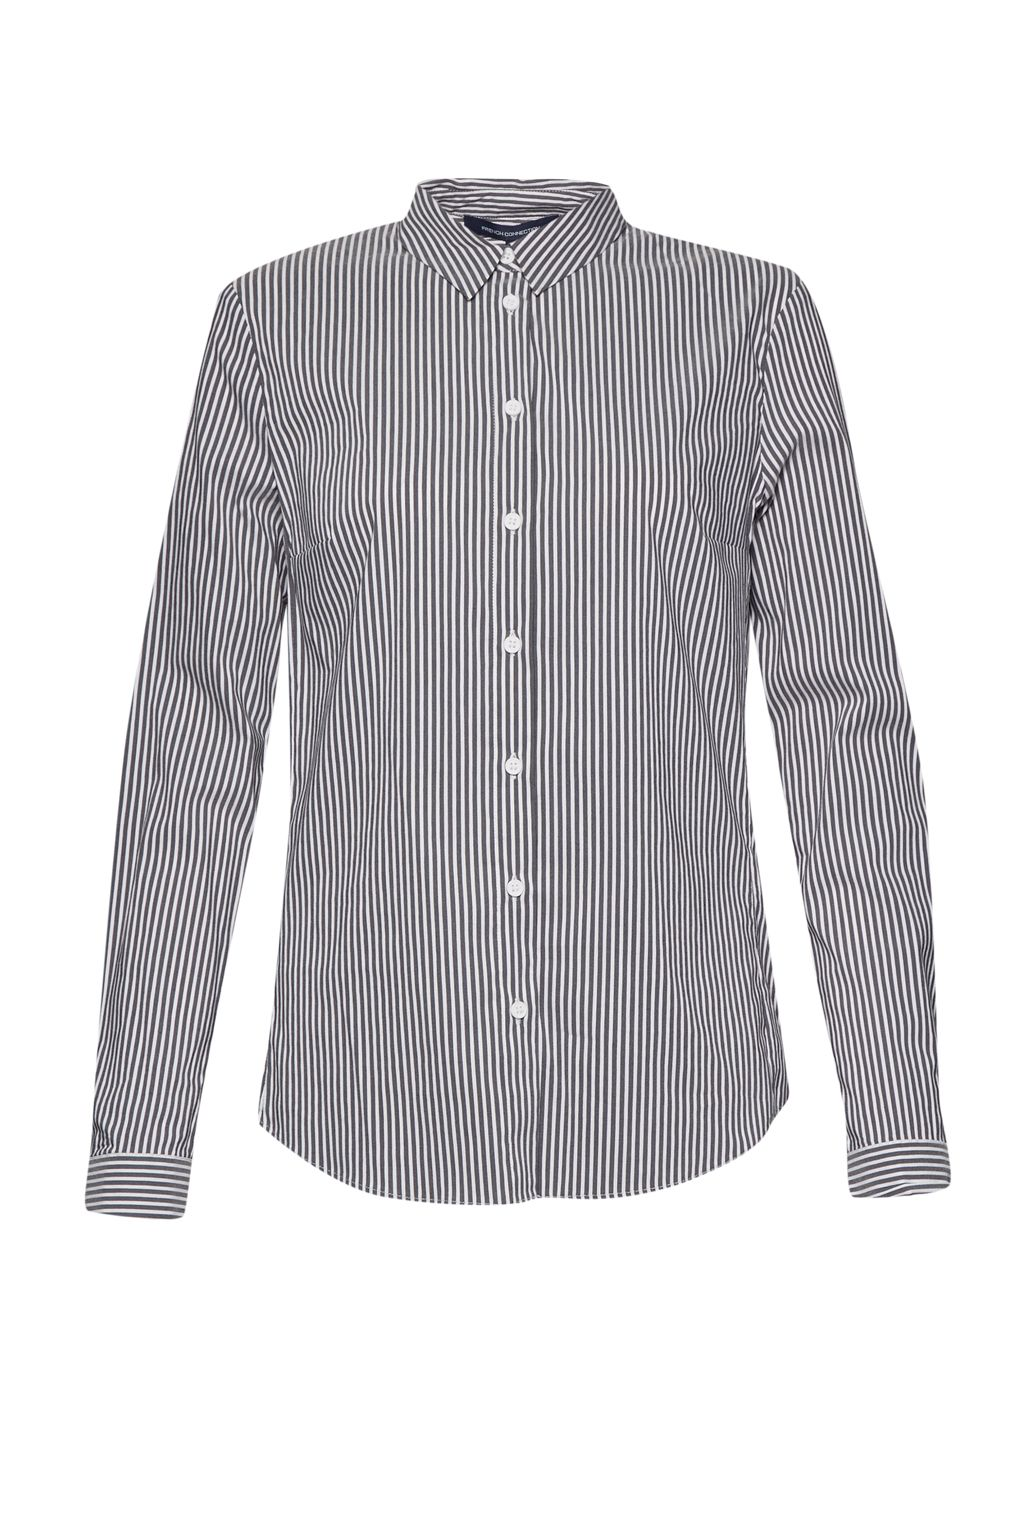 French Connection Eastside Cotton Shirt, Grey